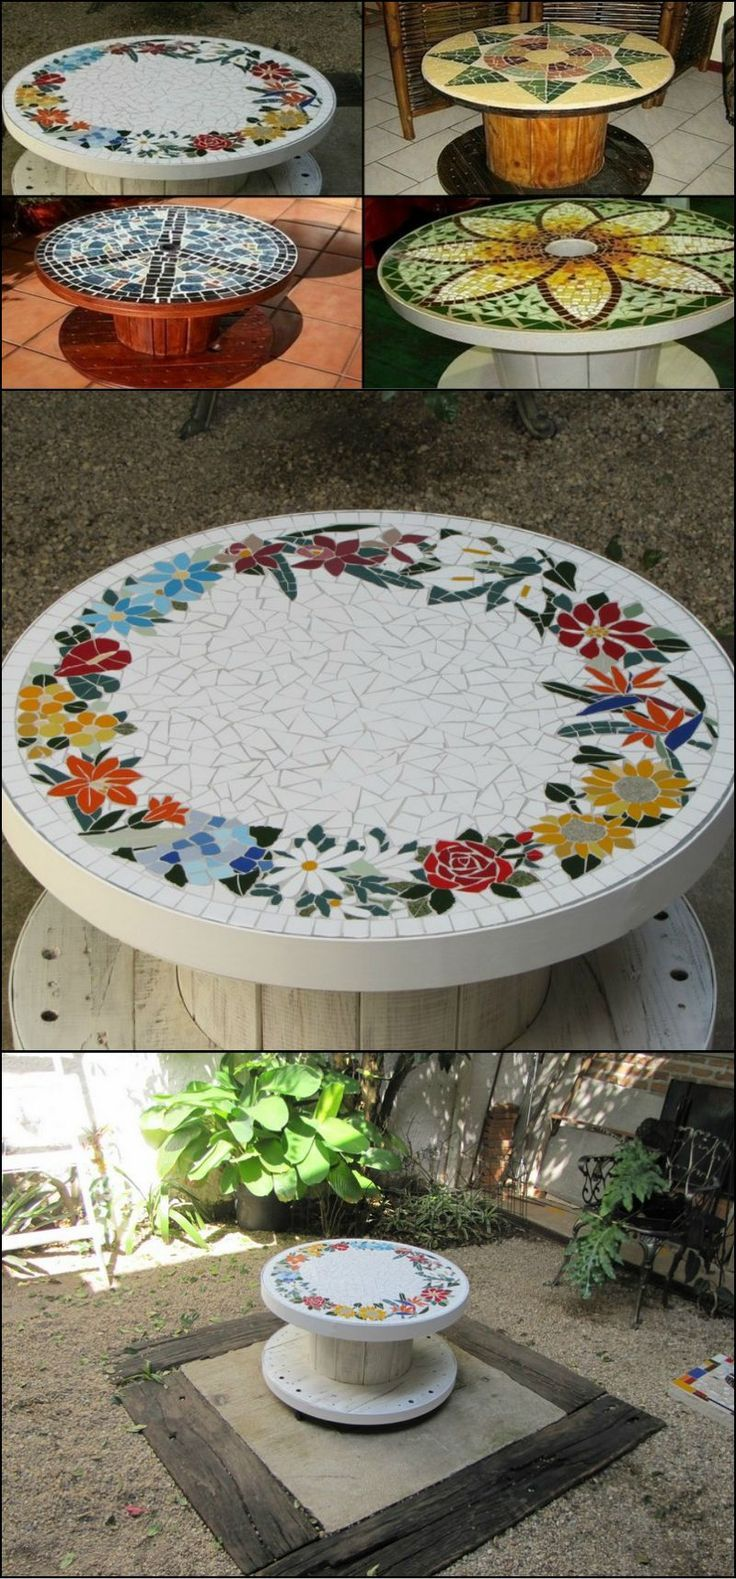 Learn How To Turn An Old Timber Spools Into A Mosaic Table  http://theownerbuildernetwork.co/nfg0  This furniture would be perfect as a center table for your outdoor living area. Use old, excess or unwanted materials for your mosaic design such as china, coloured tiles or glass. You could also add some wheel casters under for easier mobility.